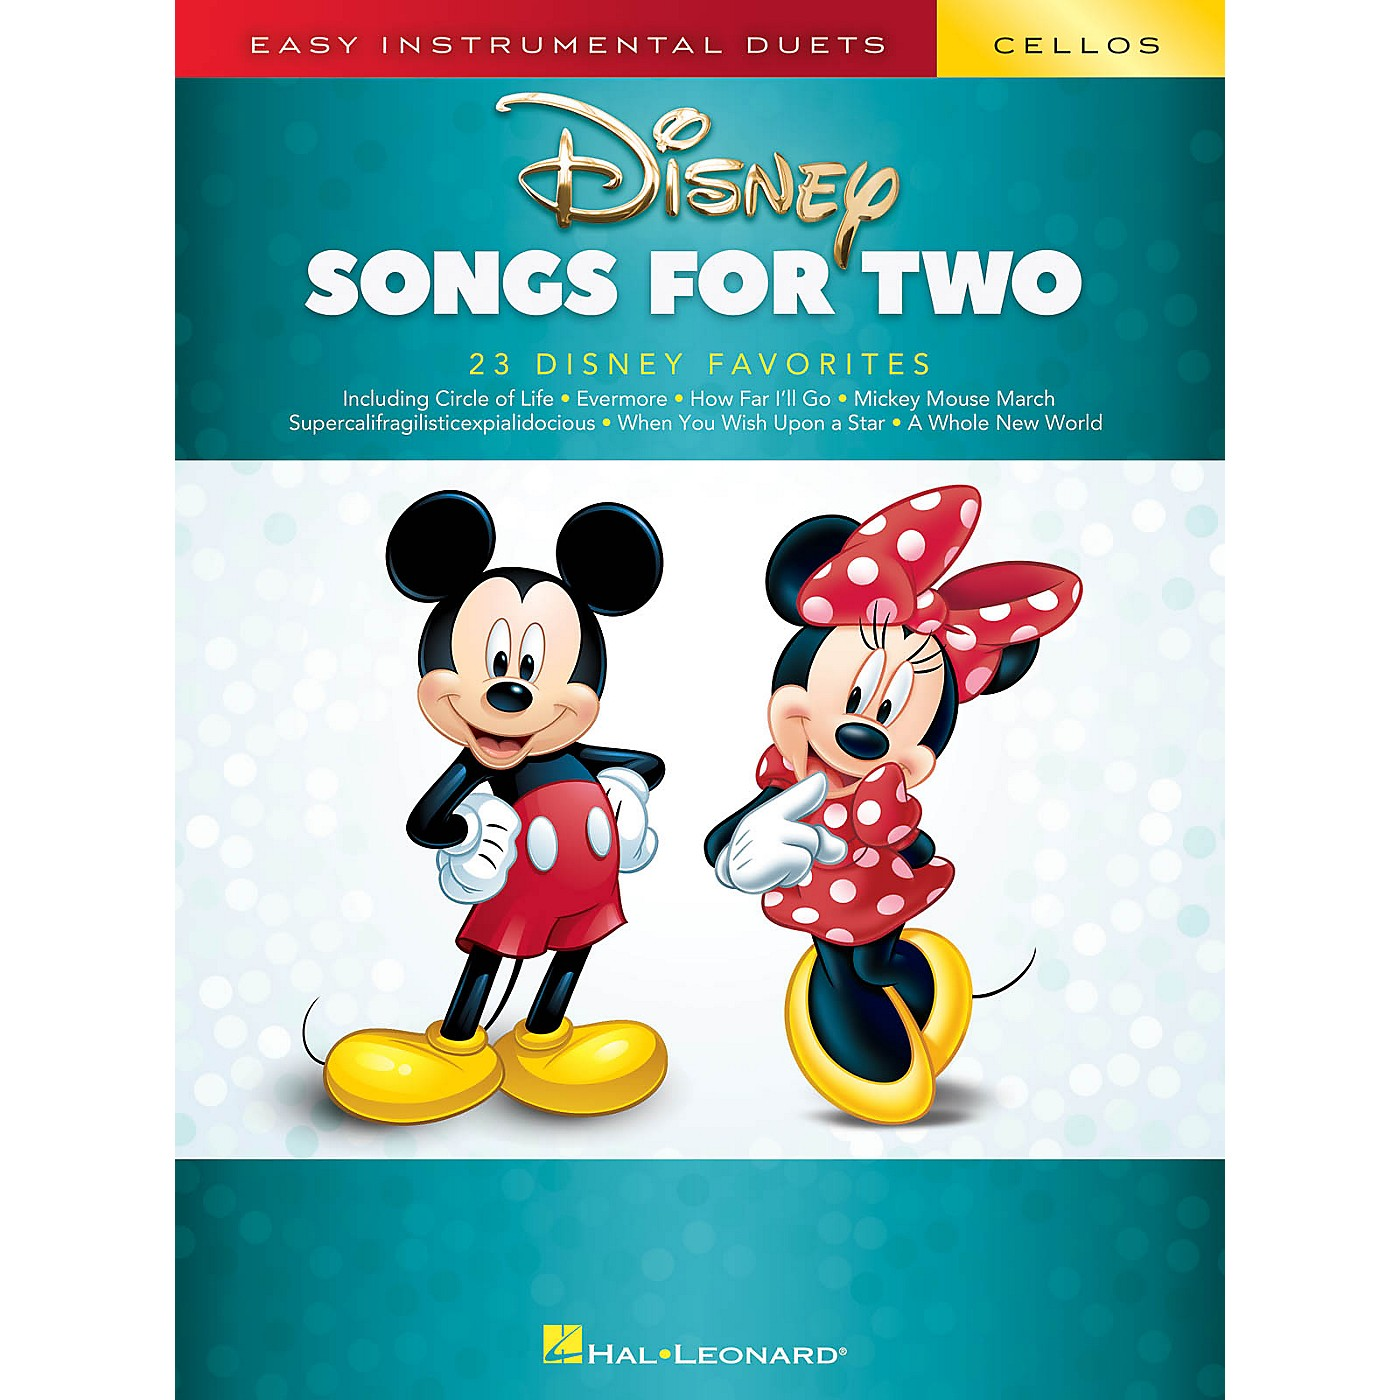 Hal Leonard Disney Songs for Two Cellos - Easy Instrumental Duets Series Songbook thumbnail